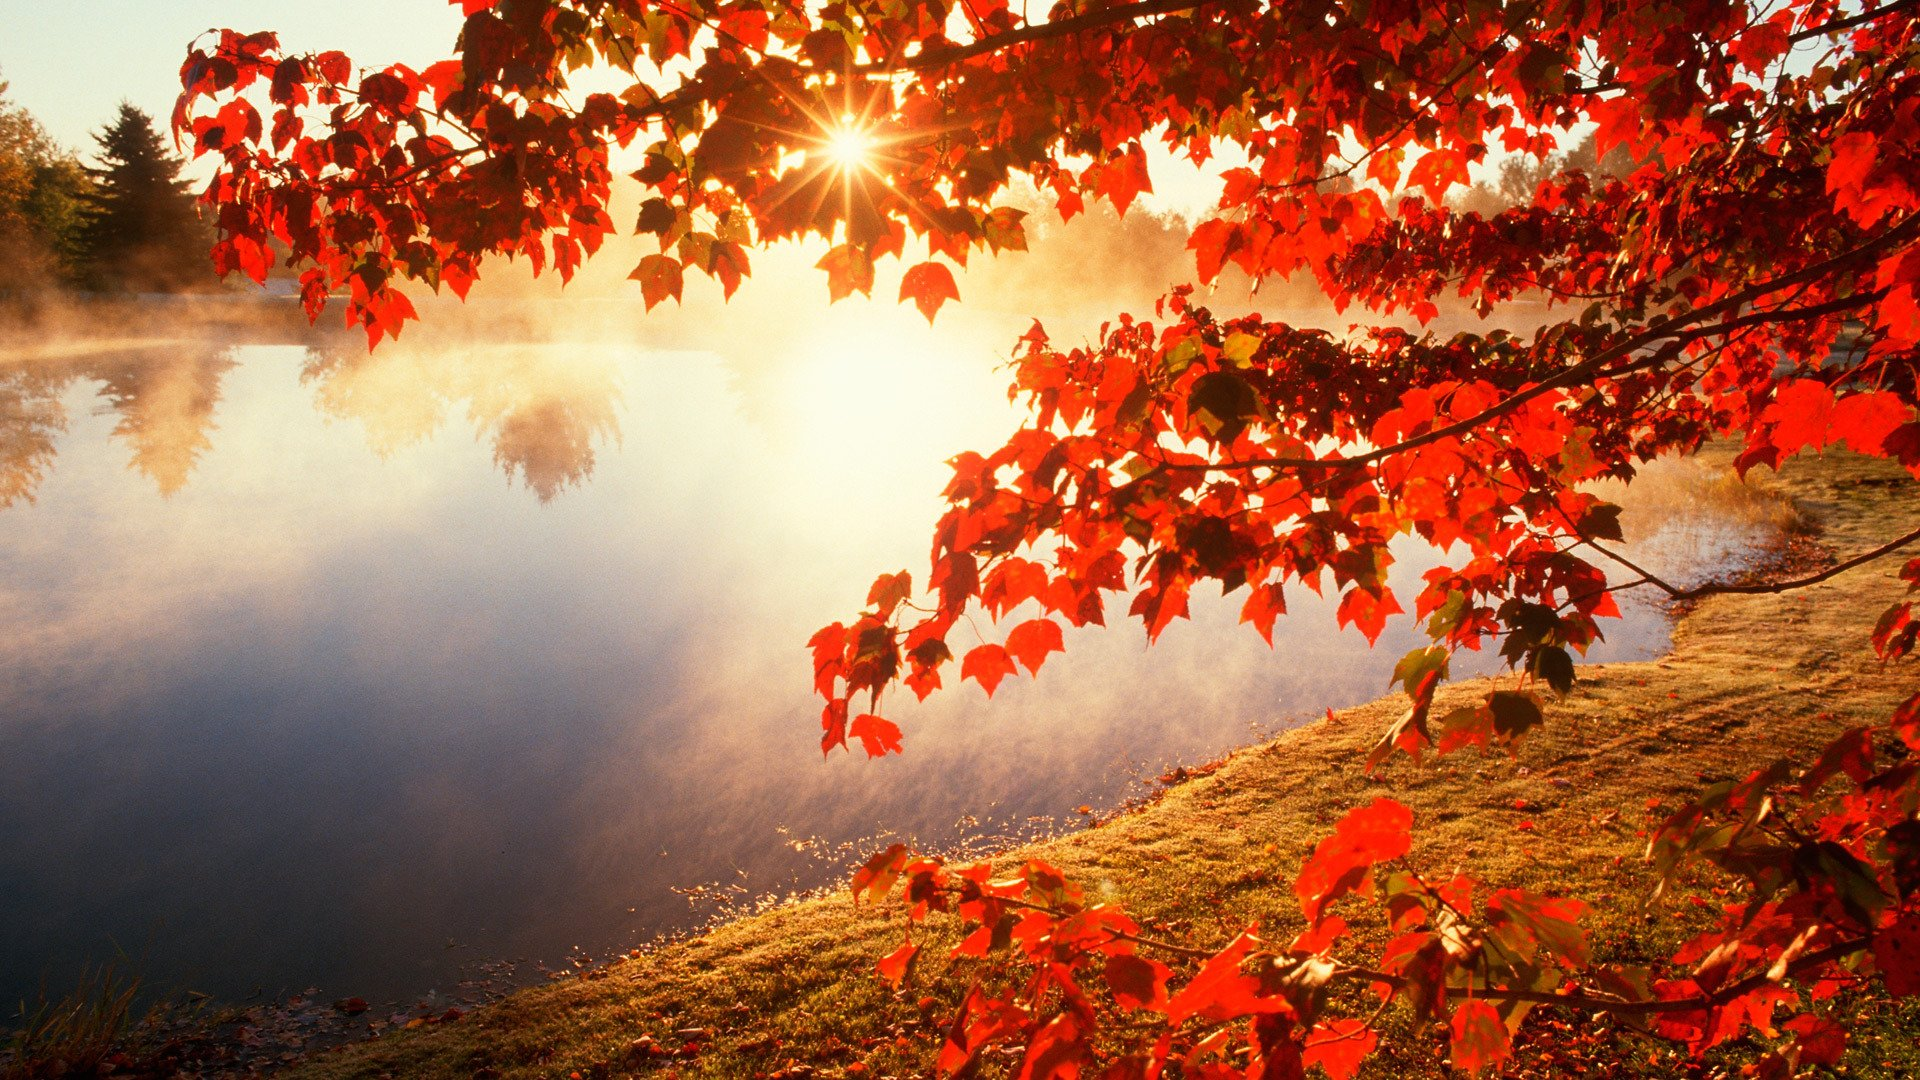 autumn season in pakistan essay Autumn: autumn, season of the year between summer and winter during which temperatures gradually decrease it is often called fall in the united states because leaves fall from the trees at that time.